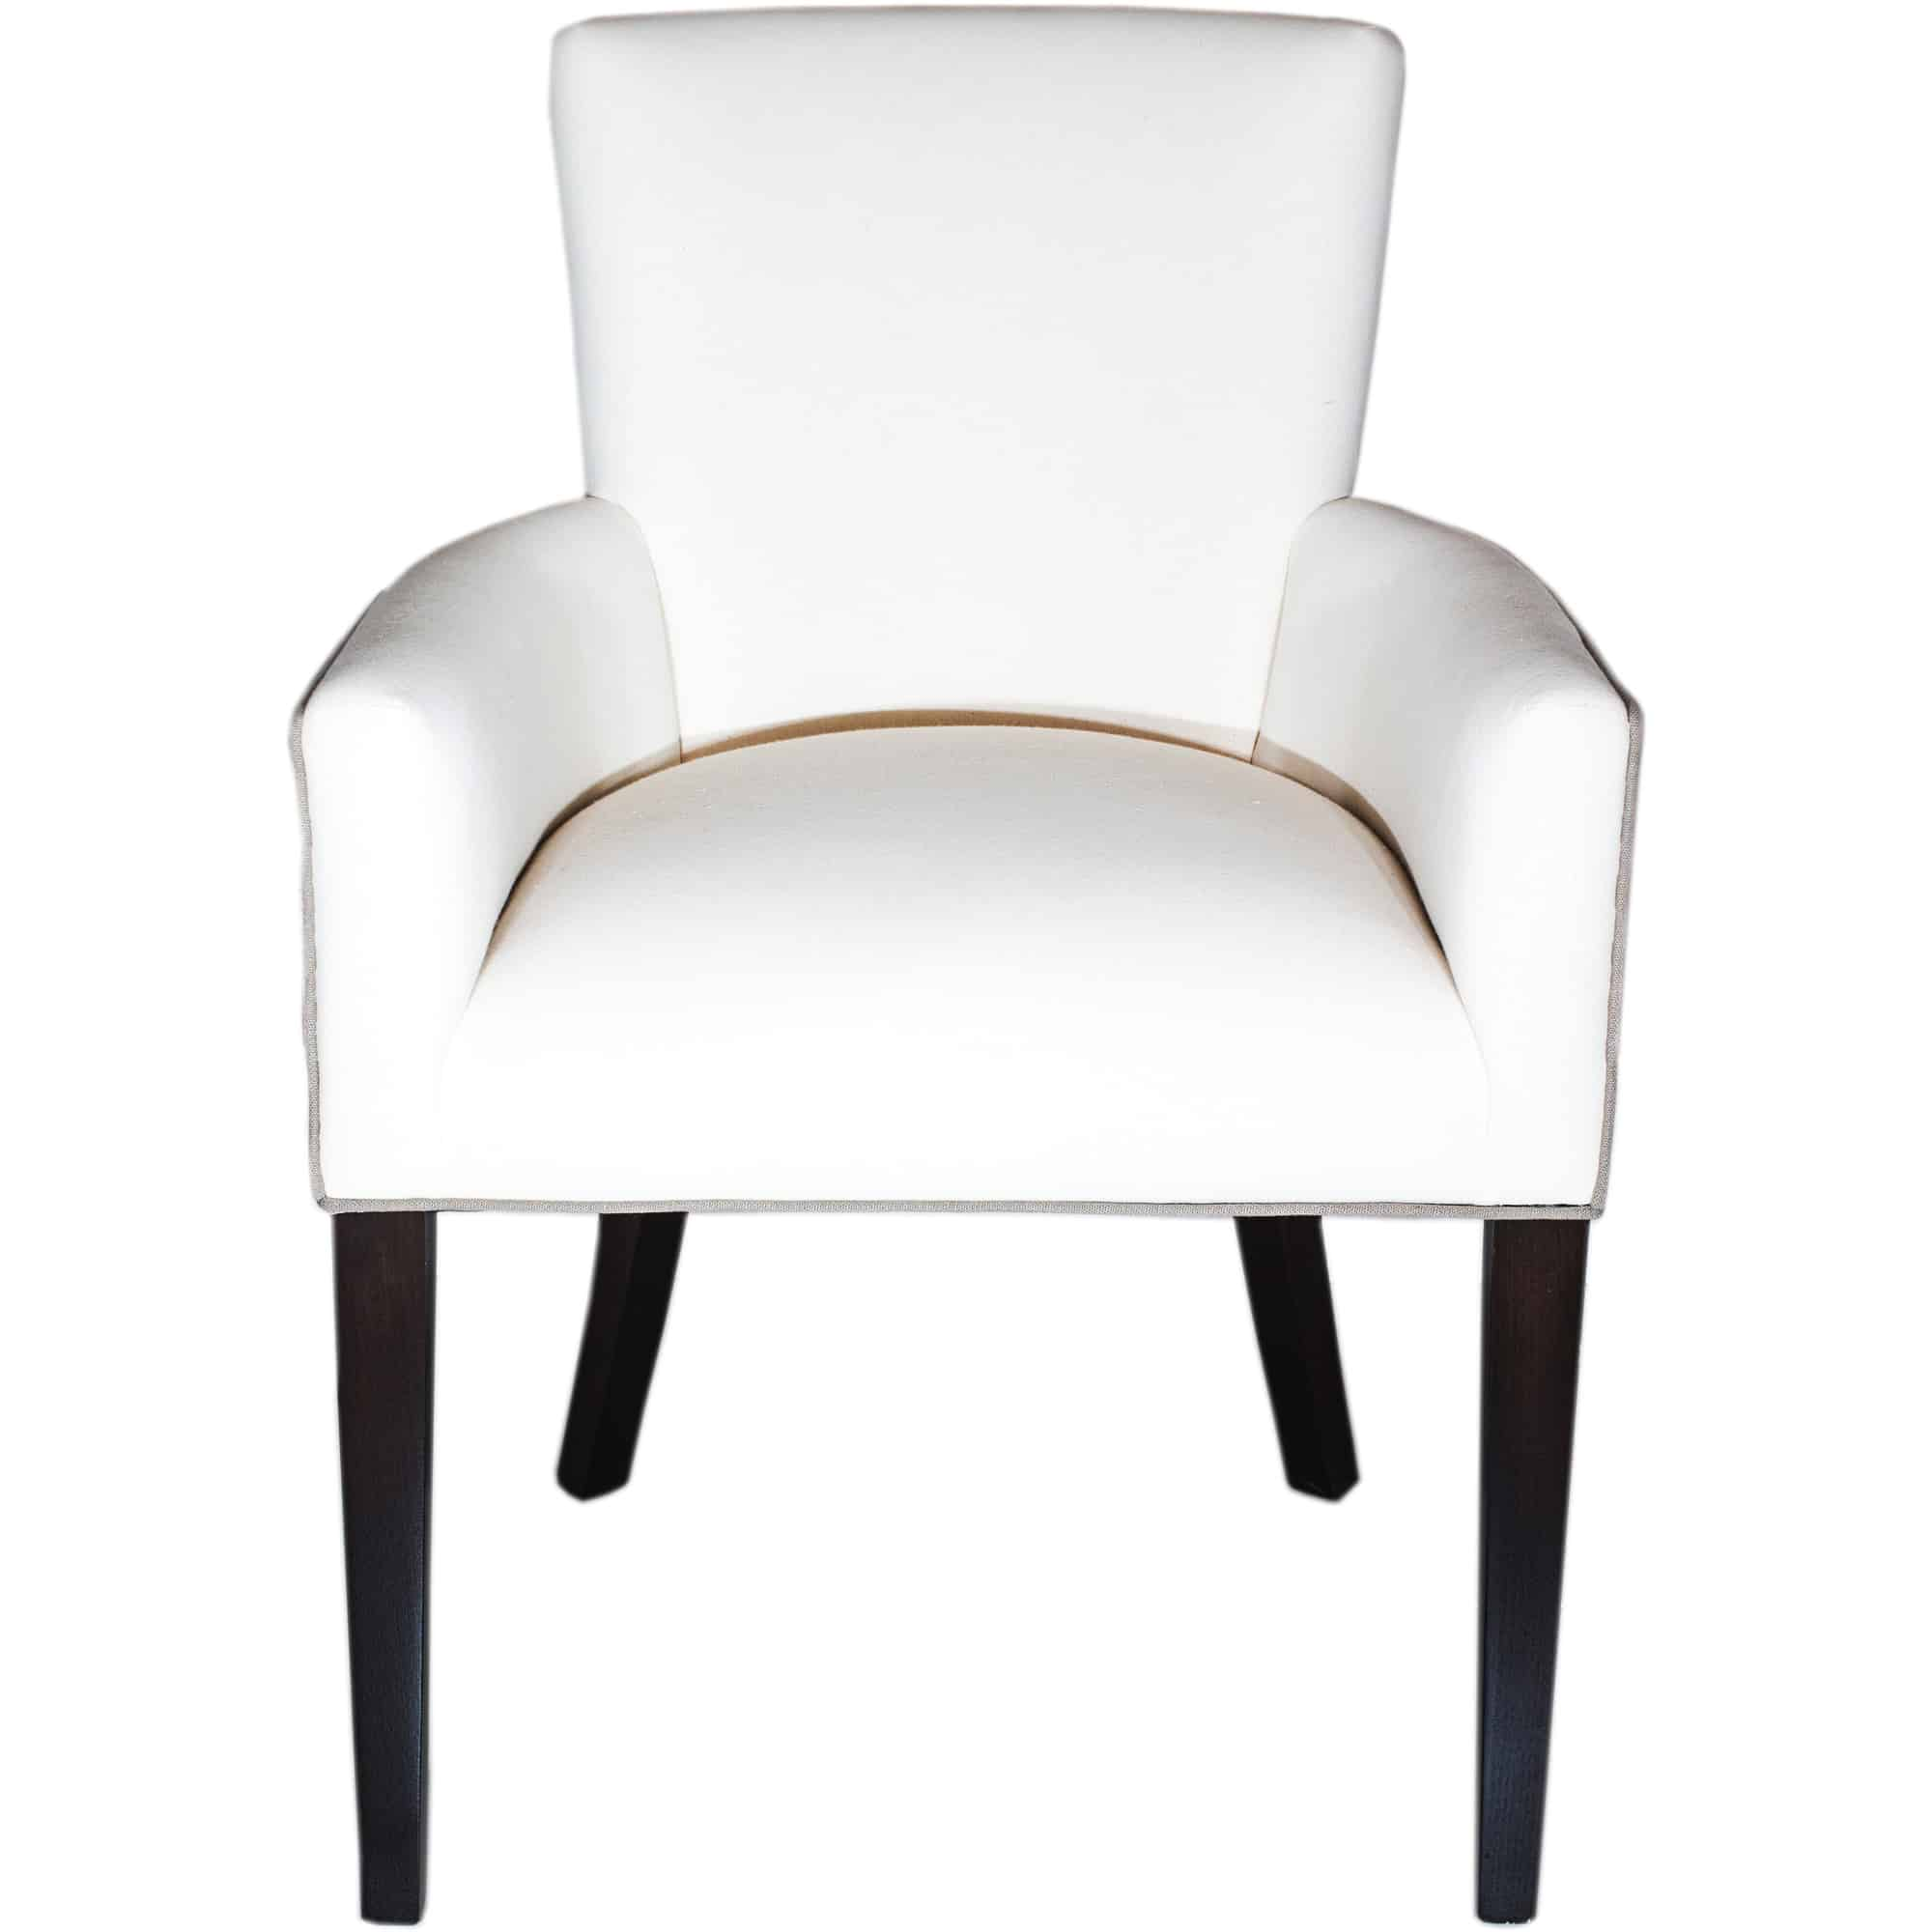 Belgravia White dining chair